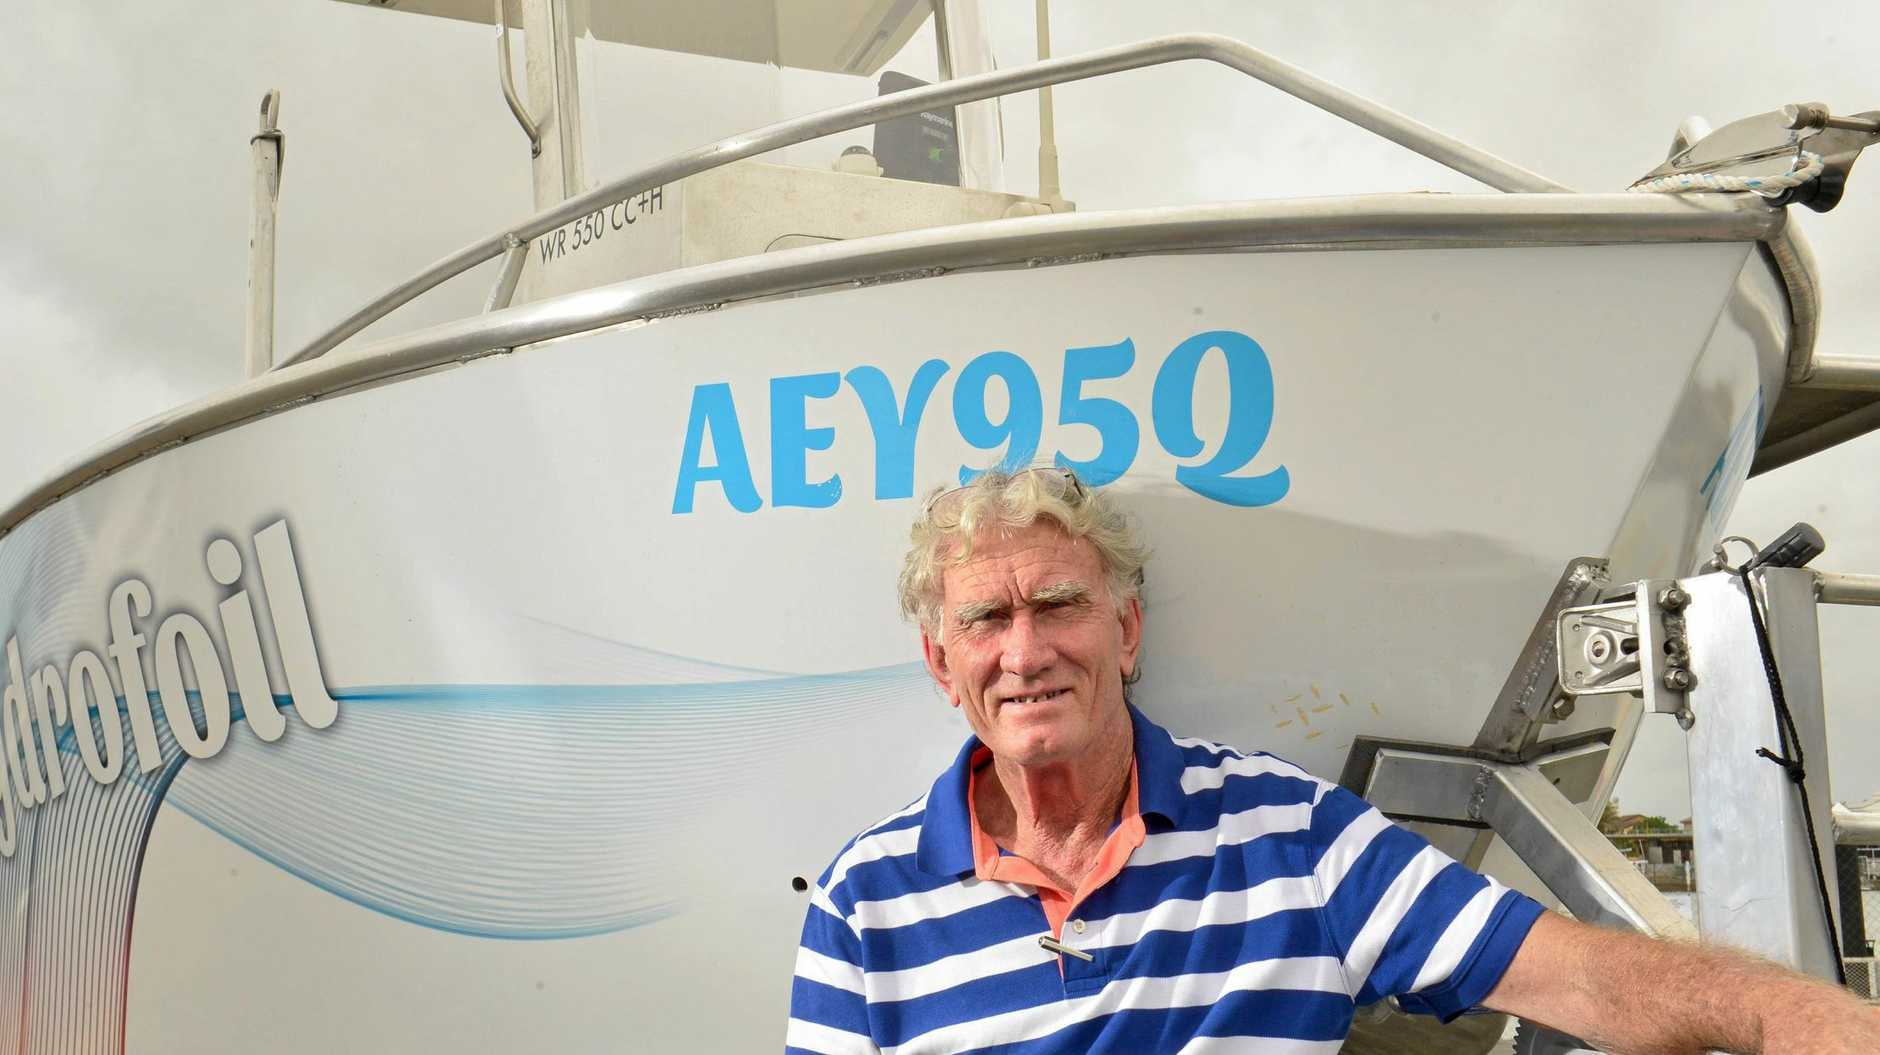 Boat builder Pat Jones has patented a hydrofoil design for trailable boats that improves ride and stability. He plans to promote the design by driving a 5.5 metre Centre Console from Mooloolaba to Sydney and anticipates he can do the 500nm trip in 20 hours.